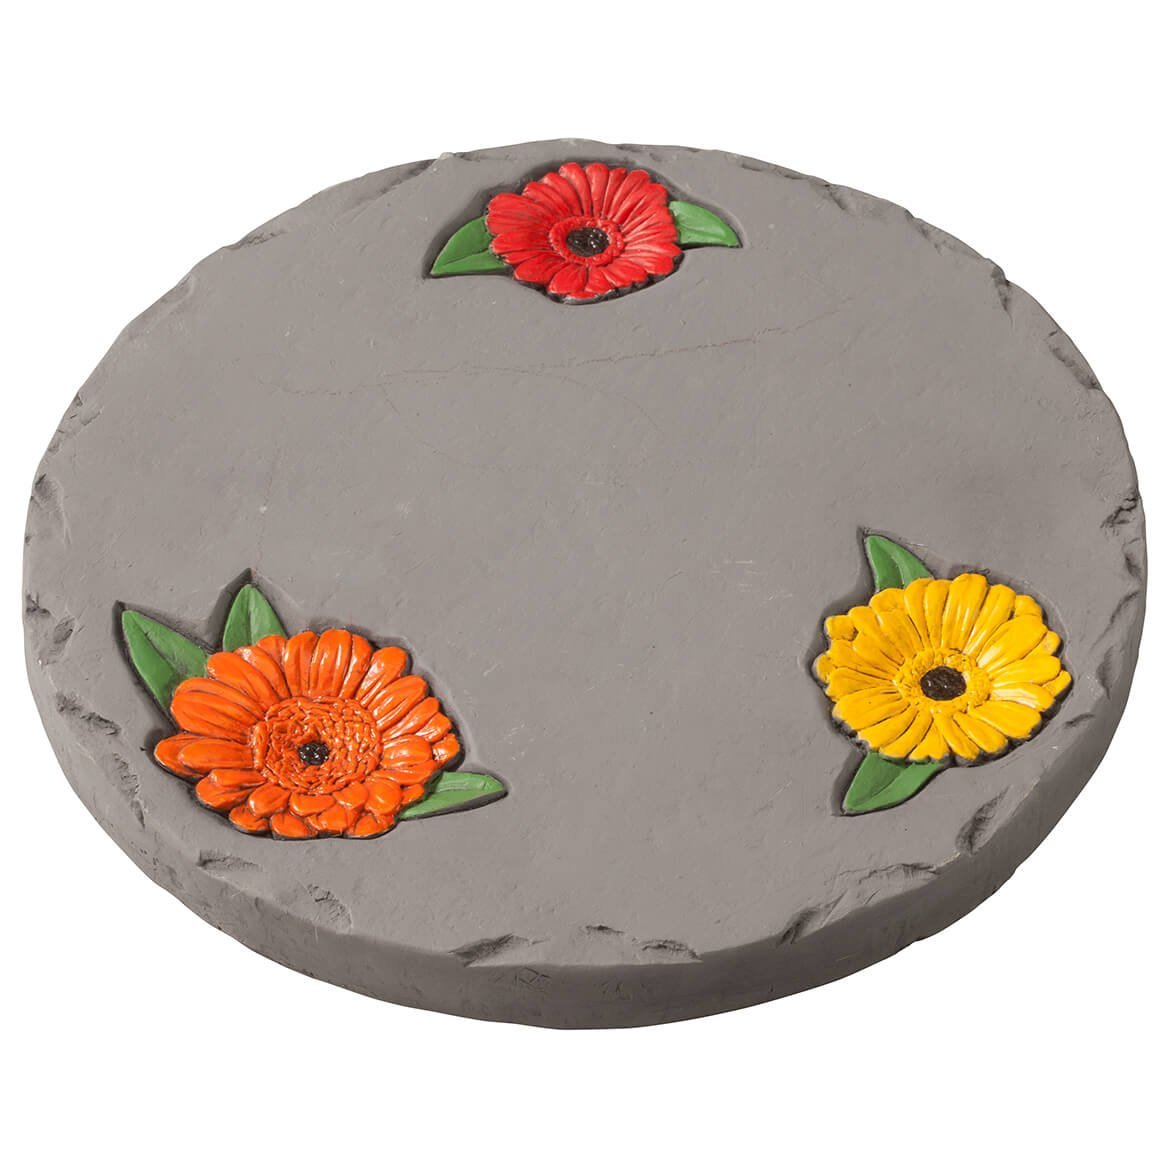 "Fox Valley Traders 7"" Daisy Garden Stepping Stone – Decorative, Colorful, Durable, Stepping Stone Ideal for Yard, Walkway or Garden – Weather-Resistant Cement"